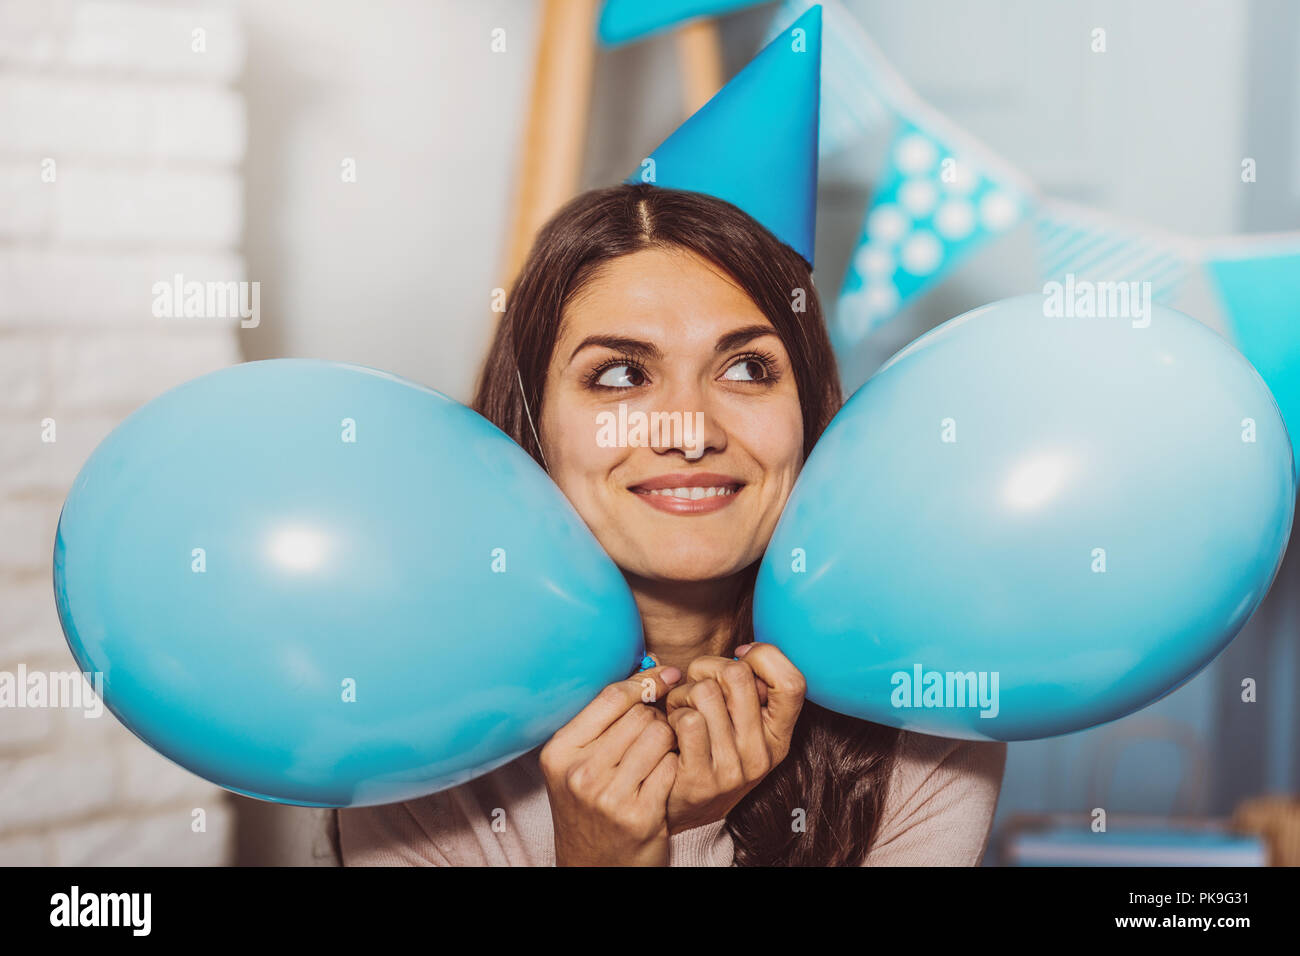 Pretty jolly woman dreaming about birthday party - Stock Image